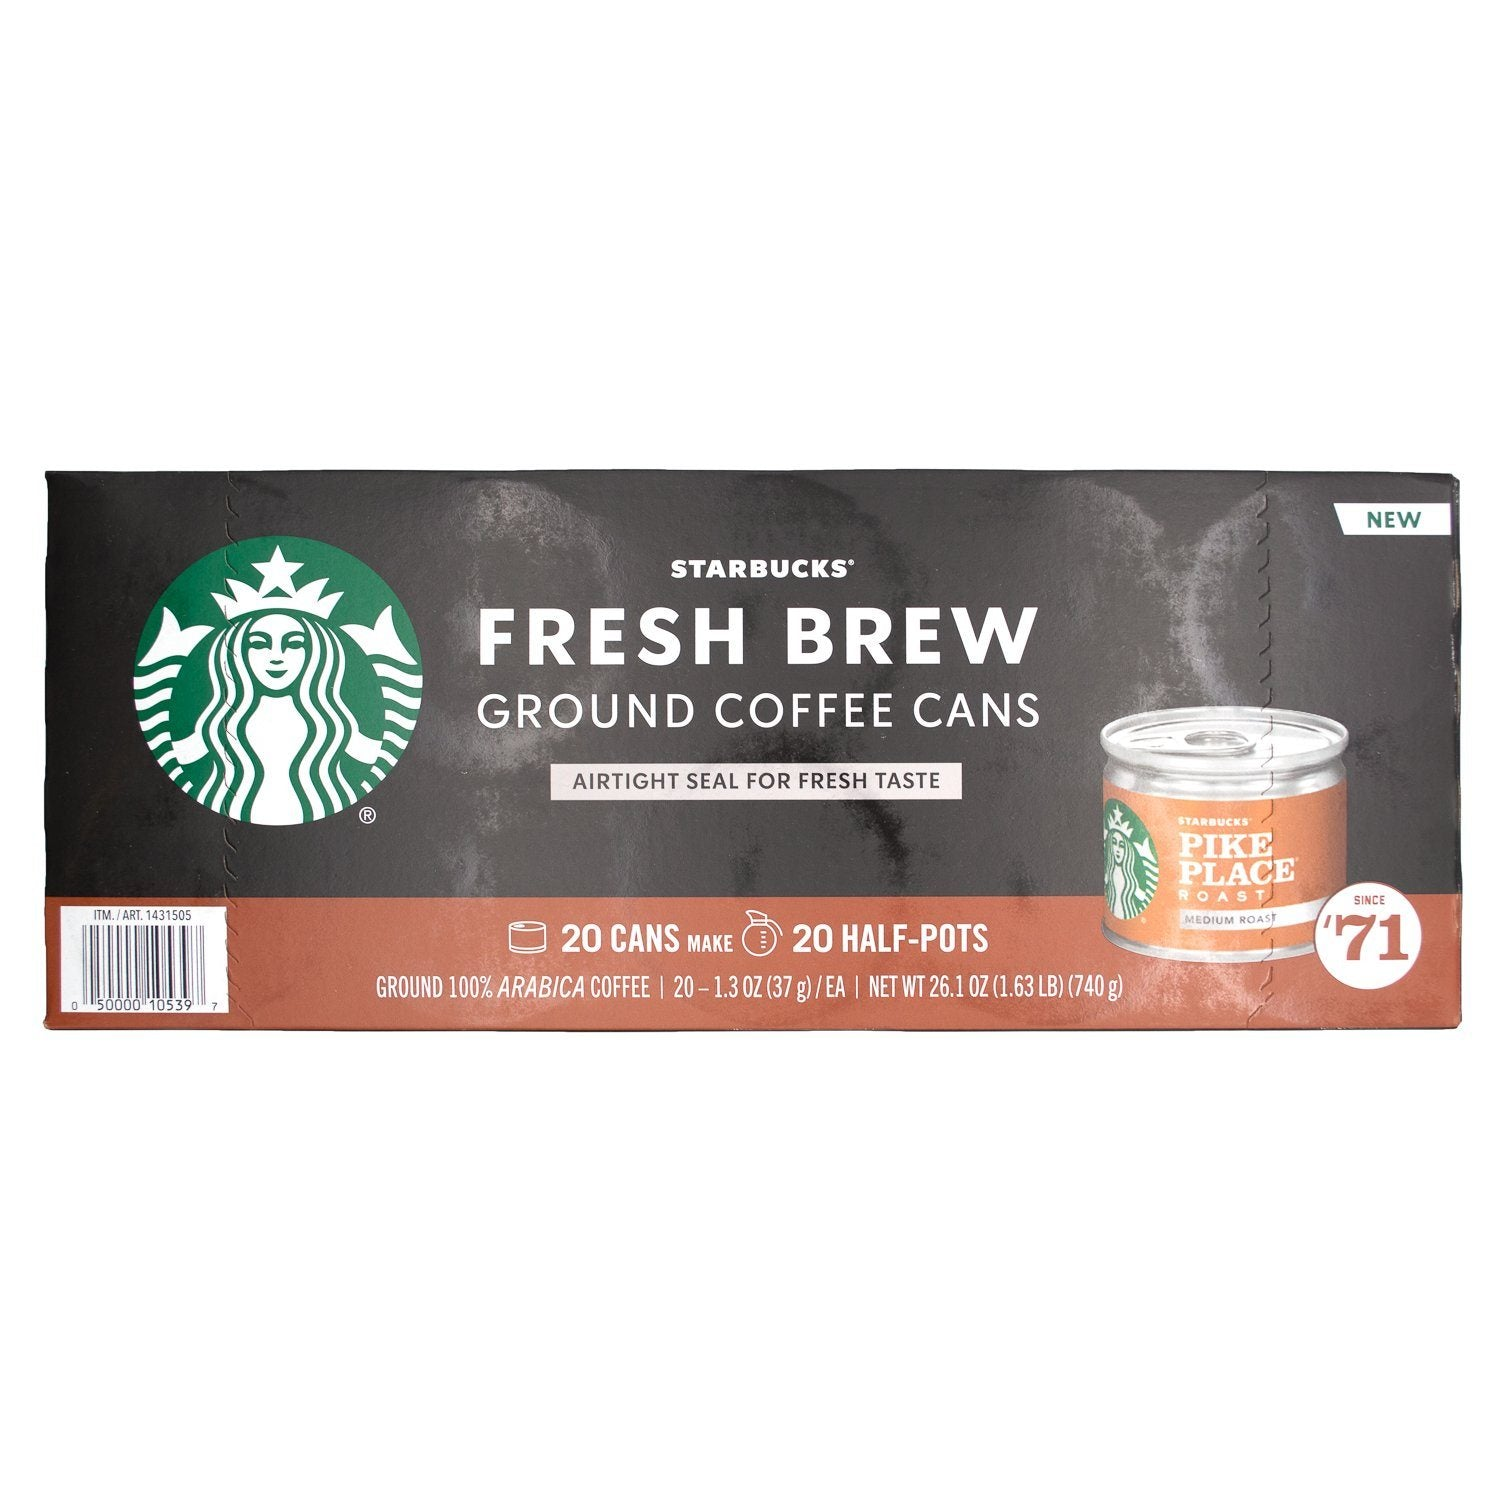 Starbucks Fresh Brew Ground Coffee Cans Starbucks Pike Place 1.3 Ounce-20 Count